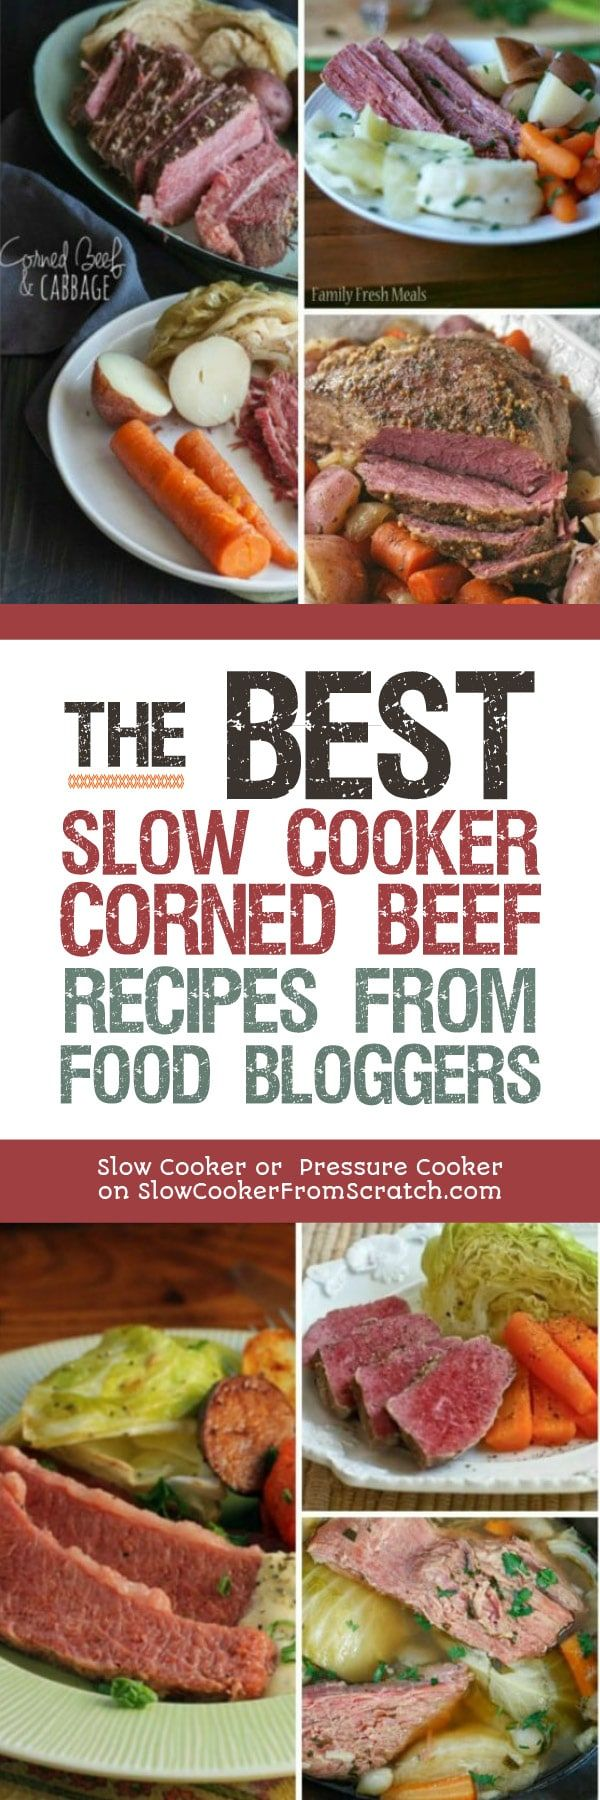 Slow Cooker Corned Beef is always delicious, and here are The BEST Slow Cooker Corned Beef Recipes from Food Bloggers! [found on Slow Cooker or Pressure Cooker at SlowCookerFromScratch.com] #CornedBeef #SlowCookerCornedBeef #SlowCookerRecipes